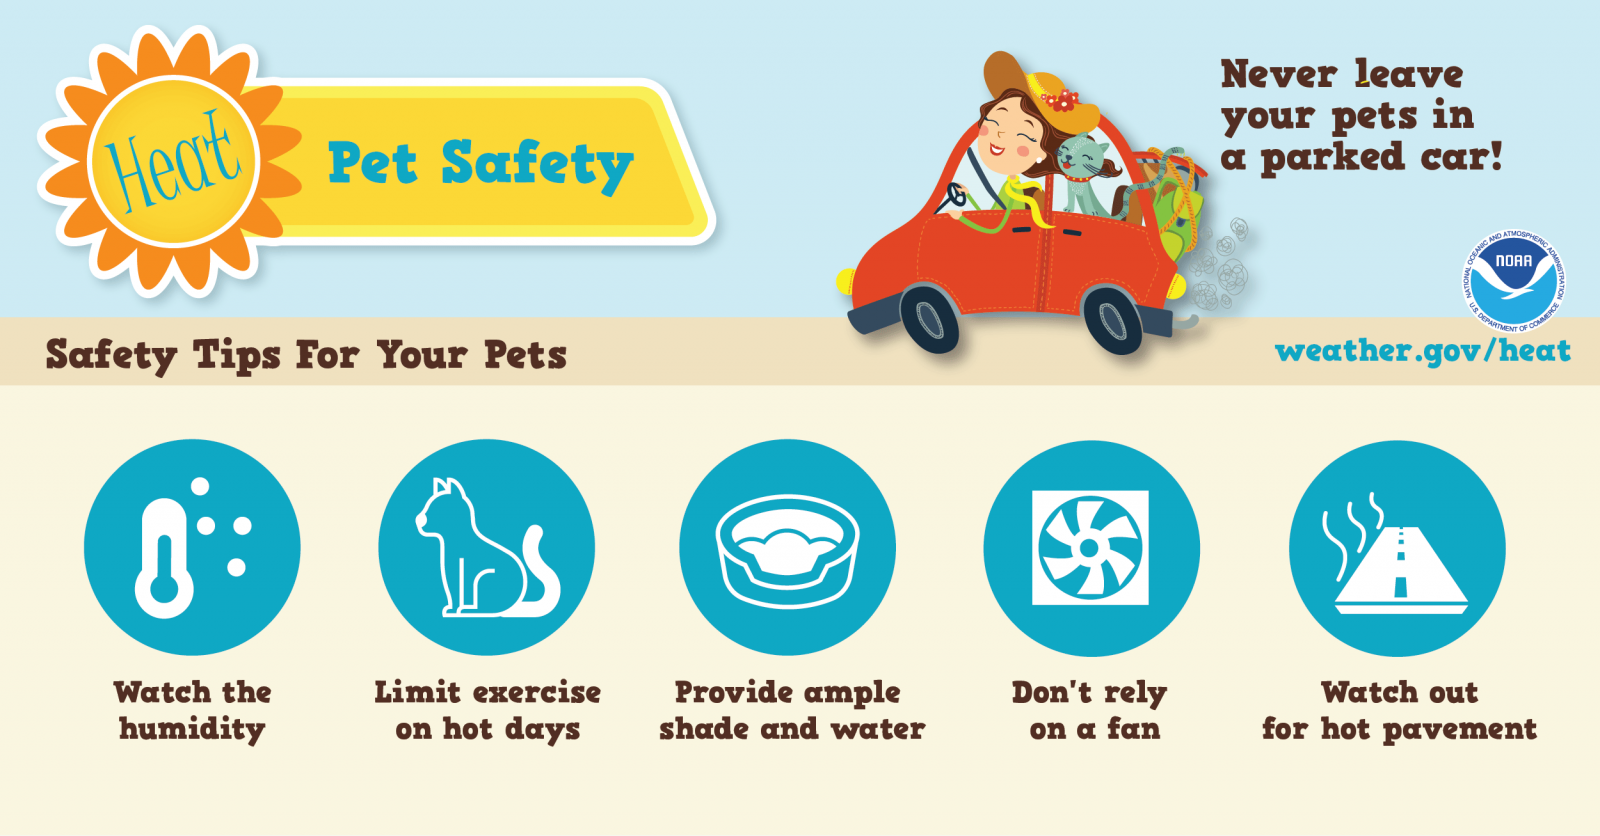 Pet Safety in Heat - never leave your pets in a parked car! Watch the humidity, limit exercise on hot days, provide ample shade and water, don't rely on a fan, watch out for hot pavement.